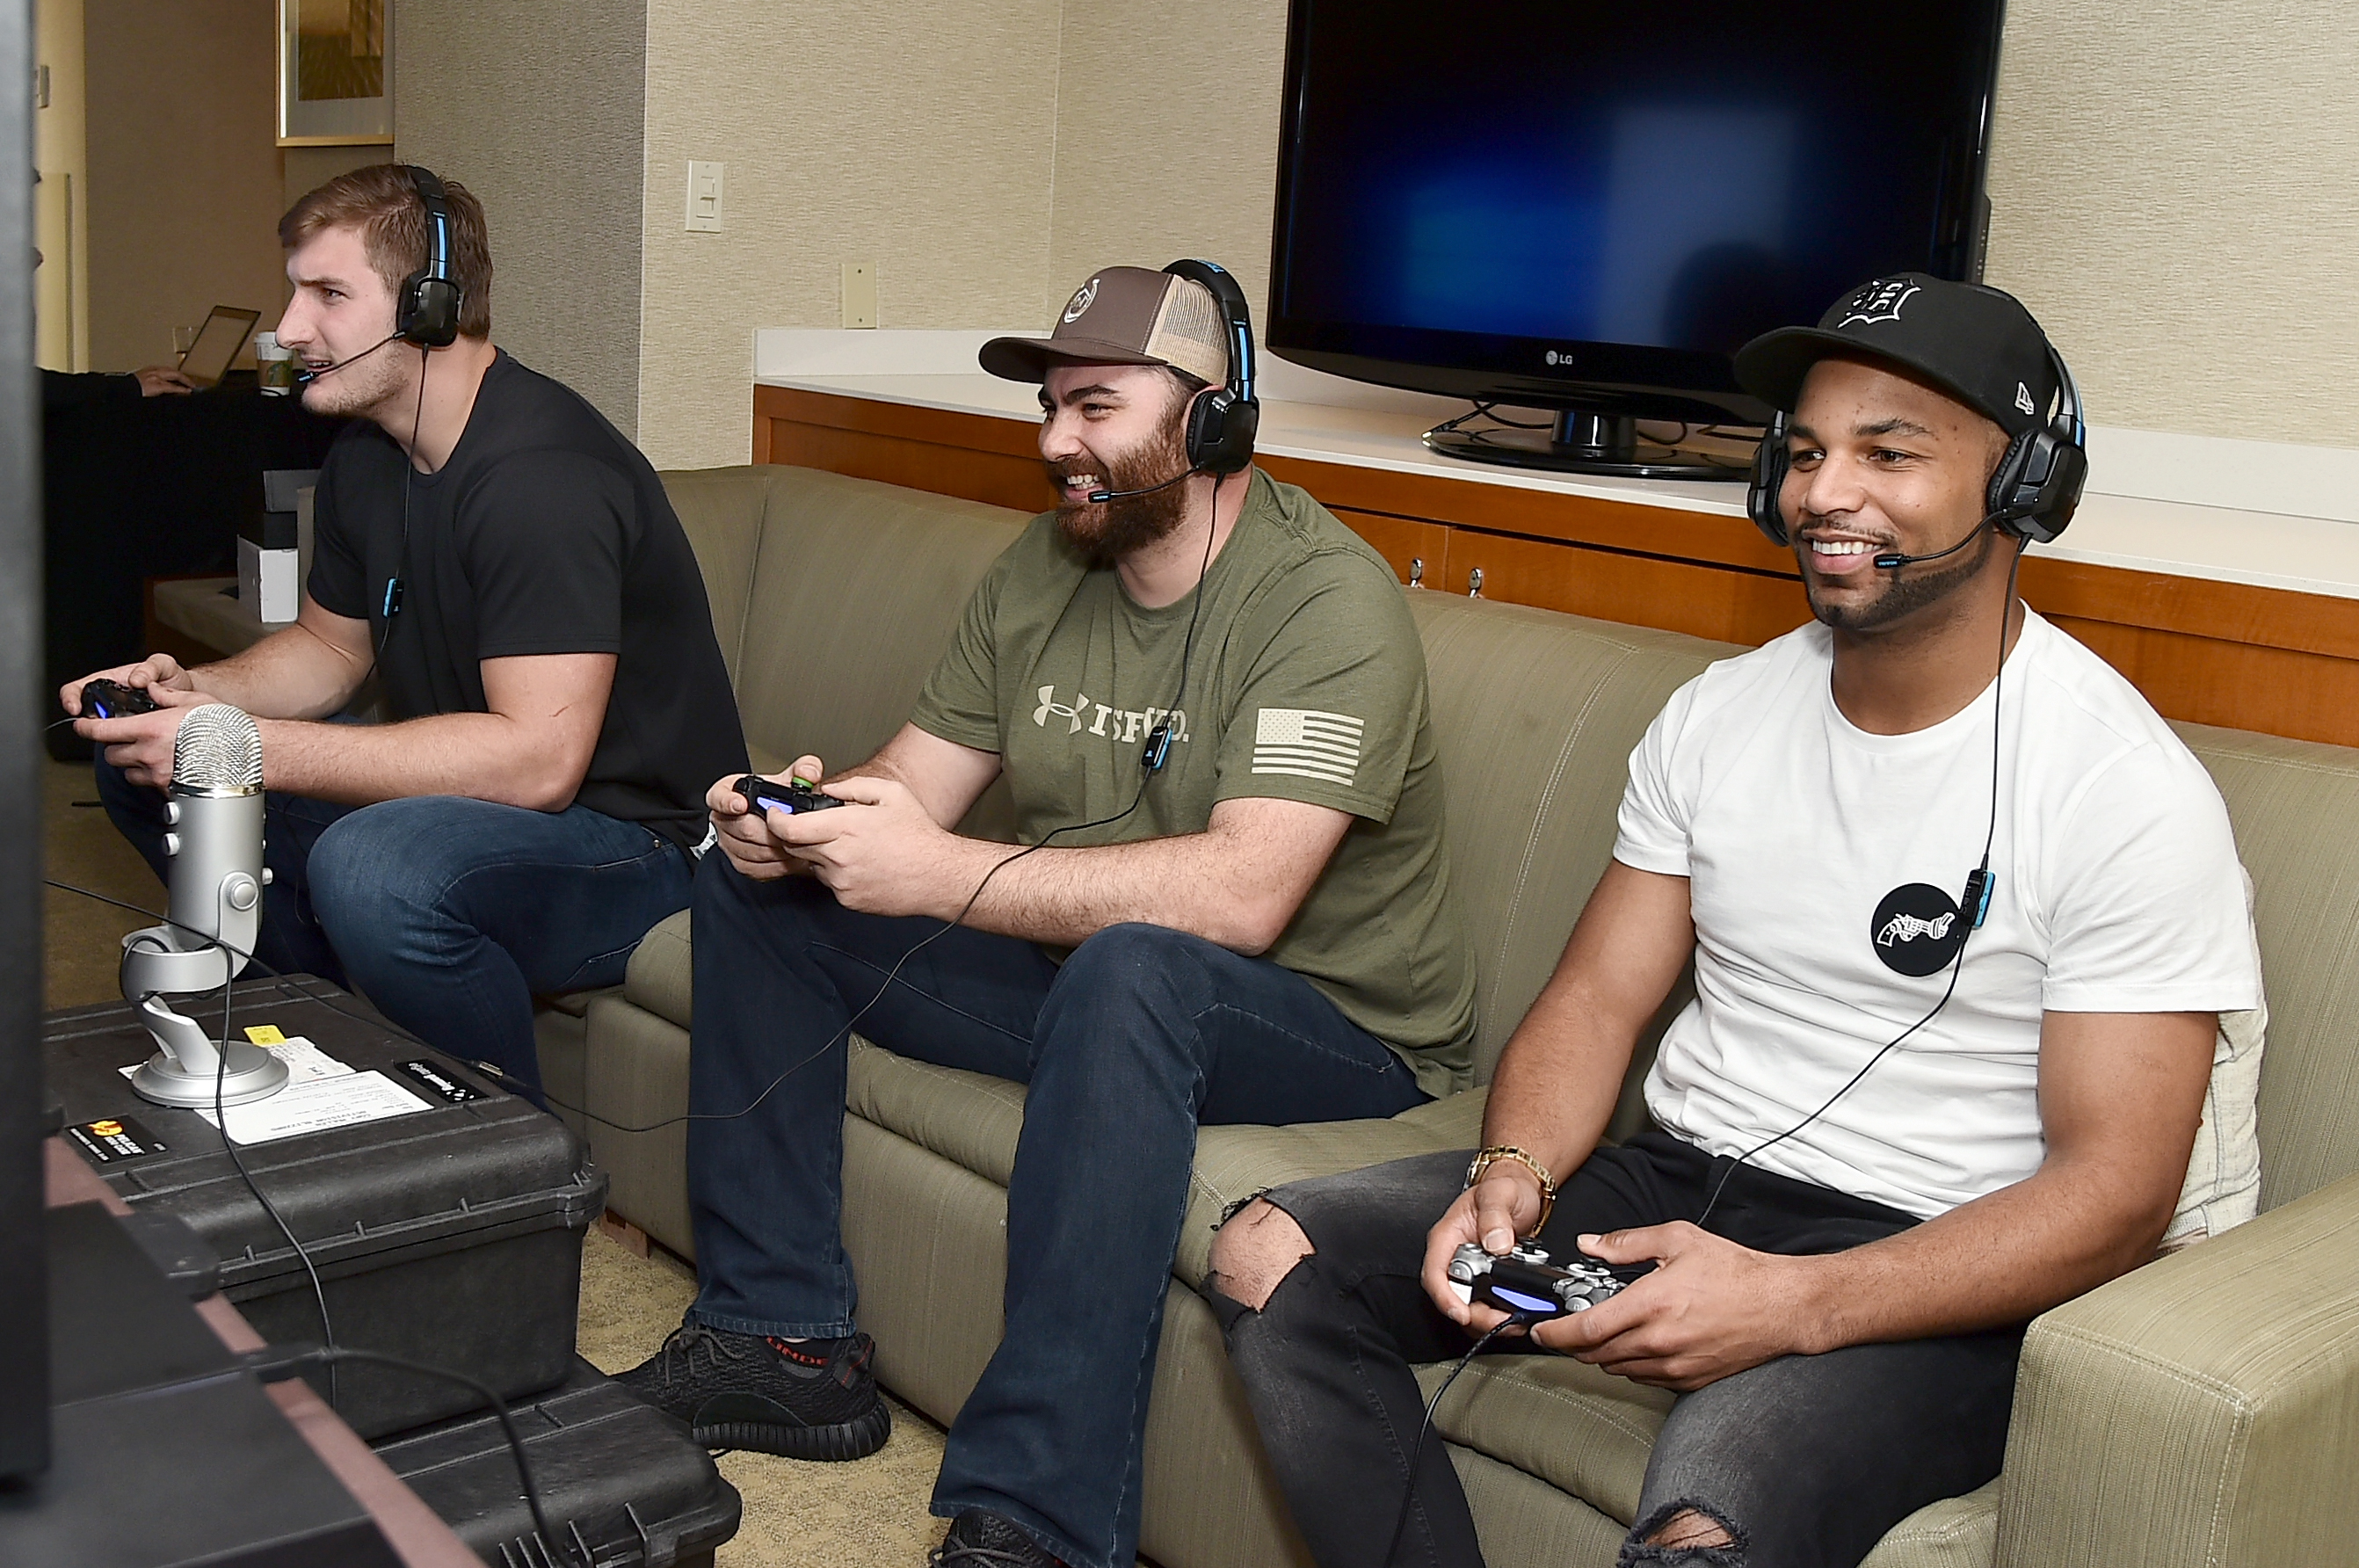 Pro football players Golden Tate and Joey Bosa play Call of Duty: Infinite Warfare Sabotage DLC from Houston